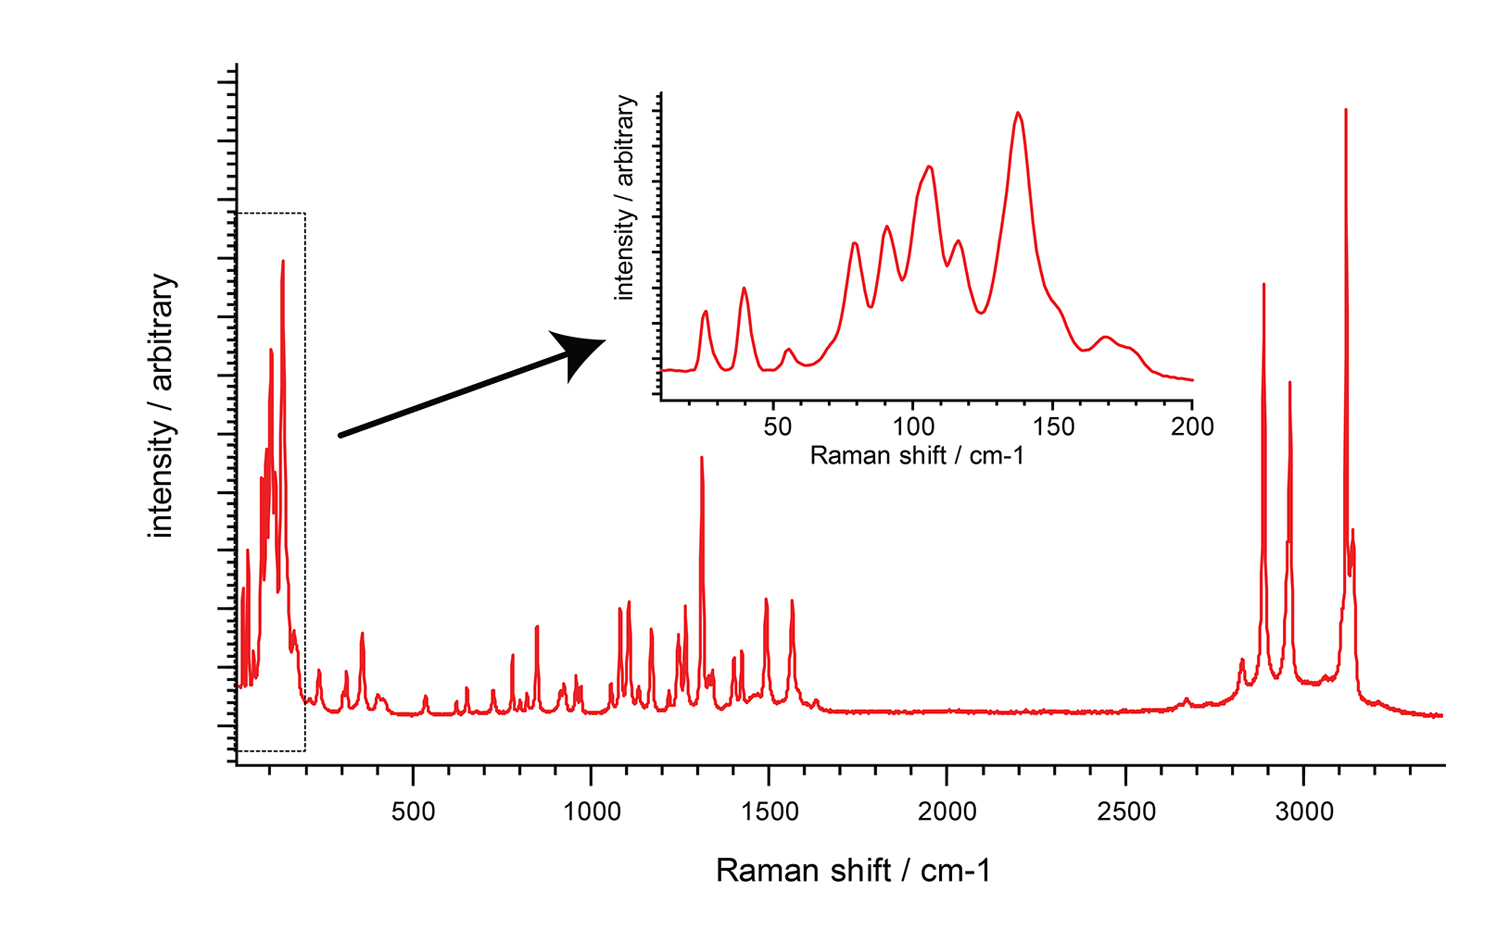 applications of atomic emission spectroscopy in pharmaceutical analysis